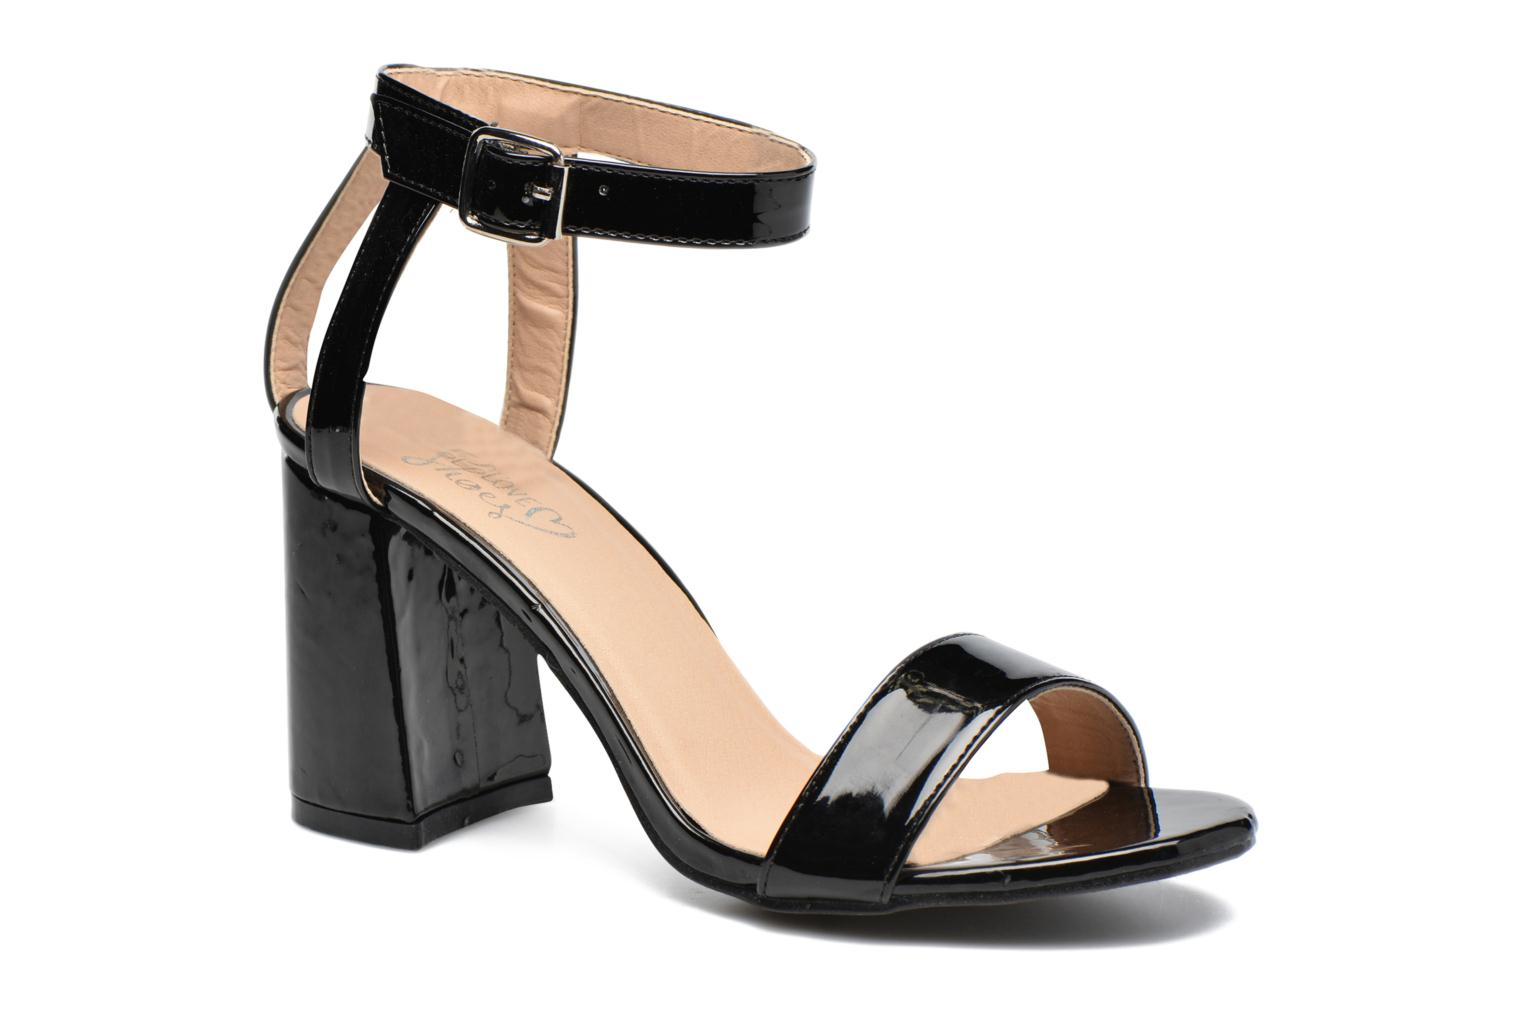 BELYZE Black Patent